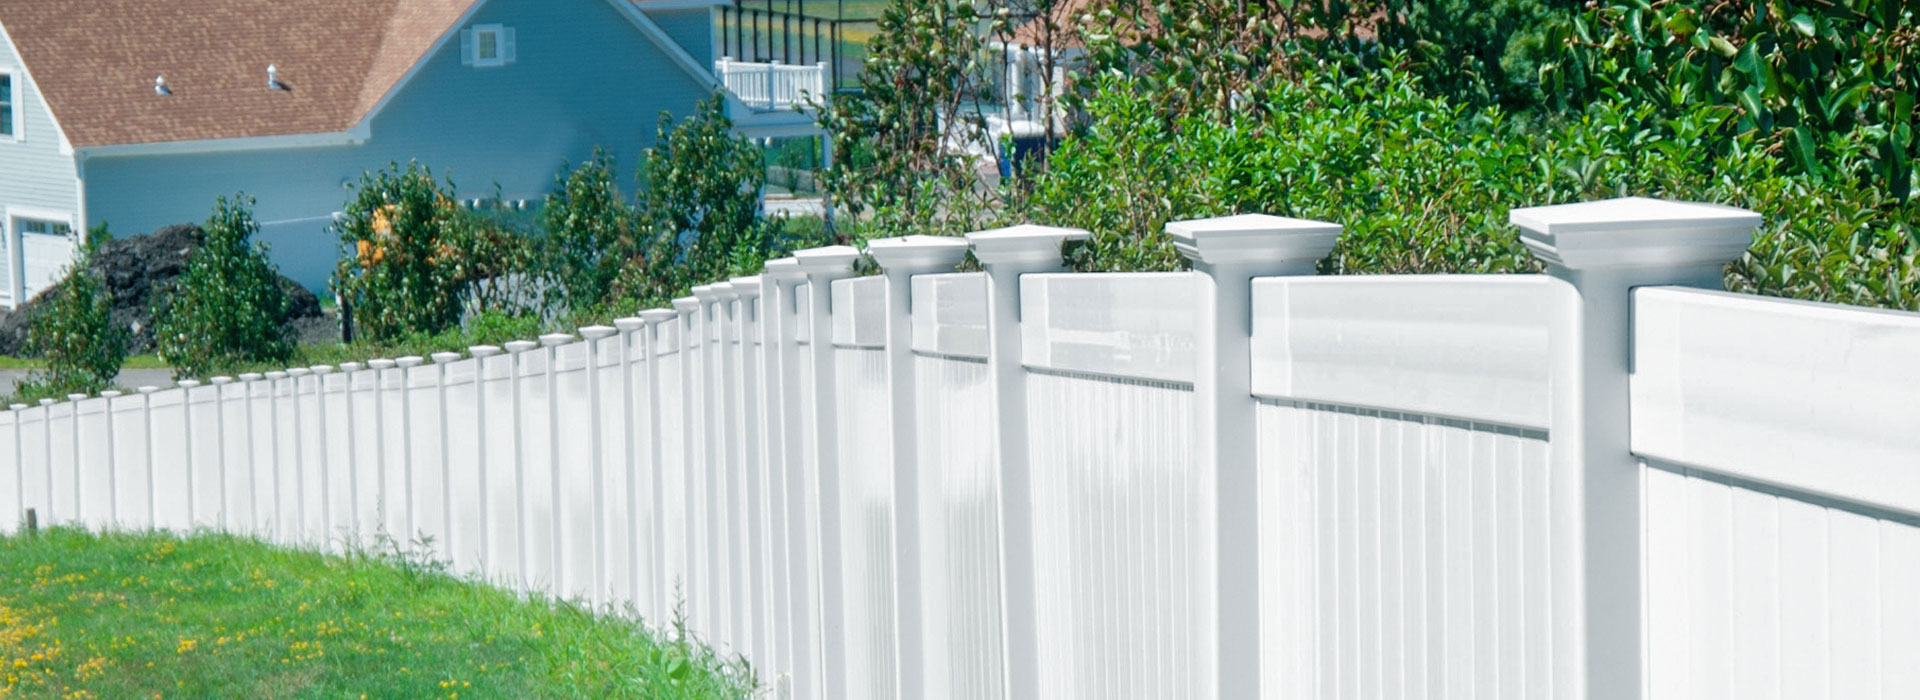 Everstrong Profiles A Full Comprehensive Vinyl Program For Fence People By